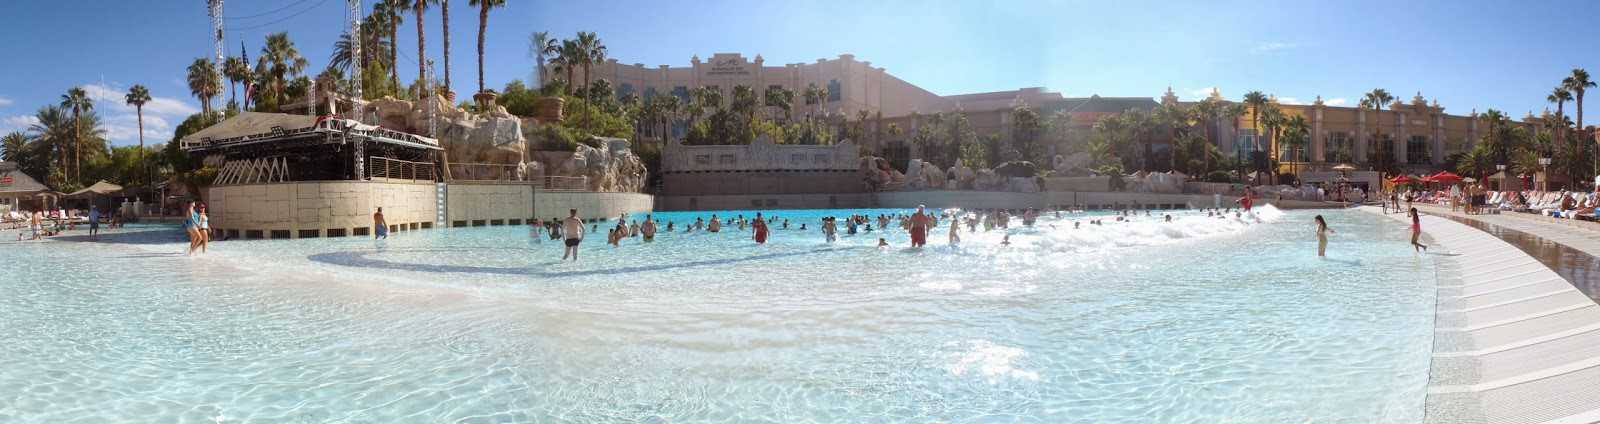 panoramic picture of the pool